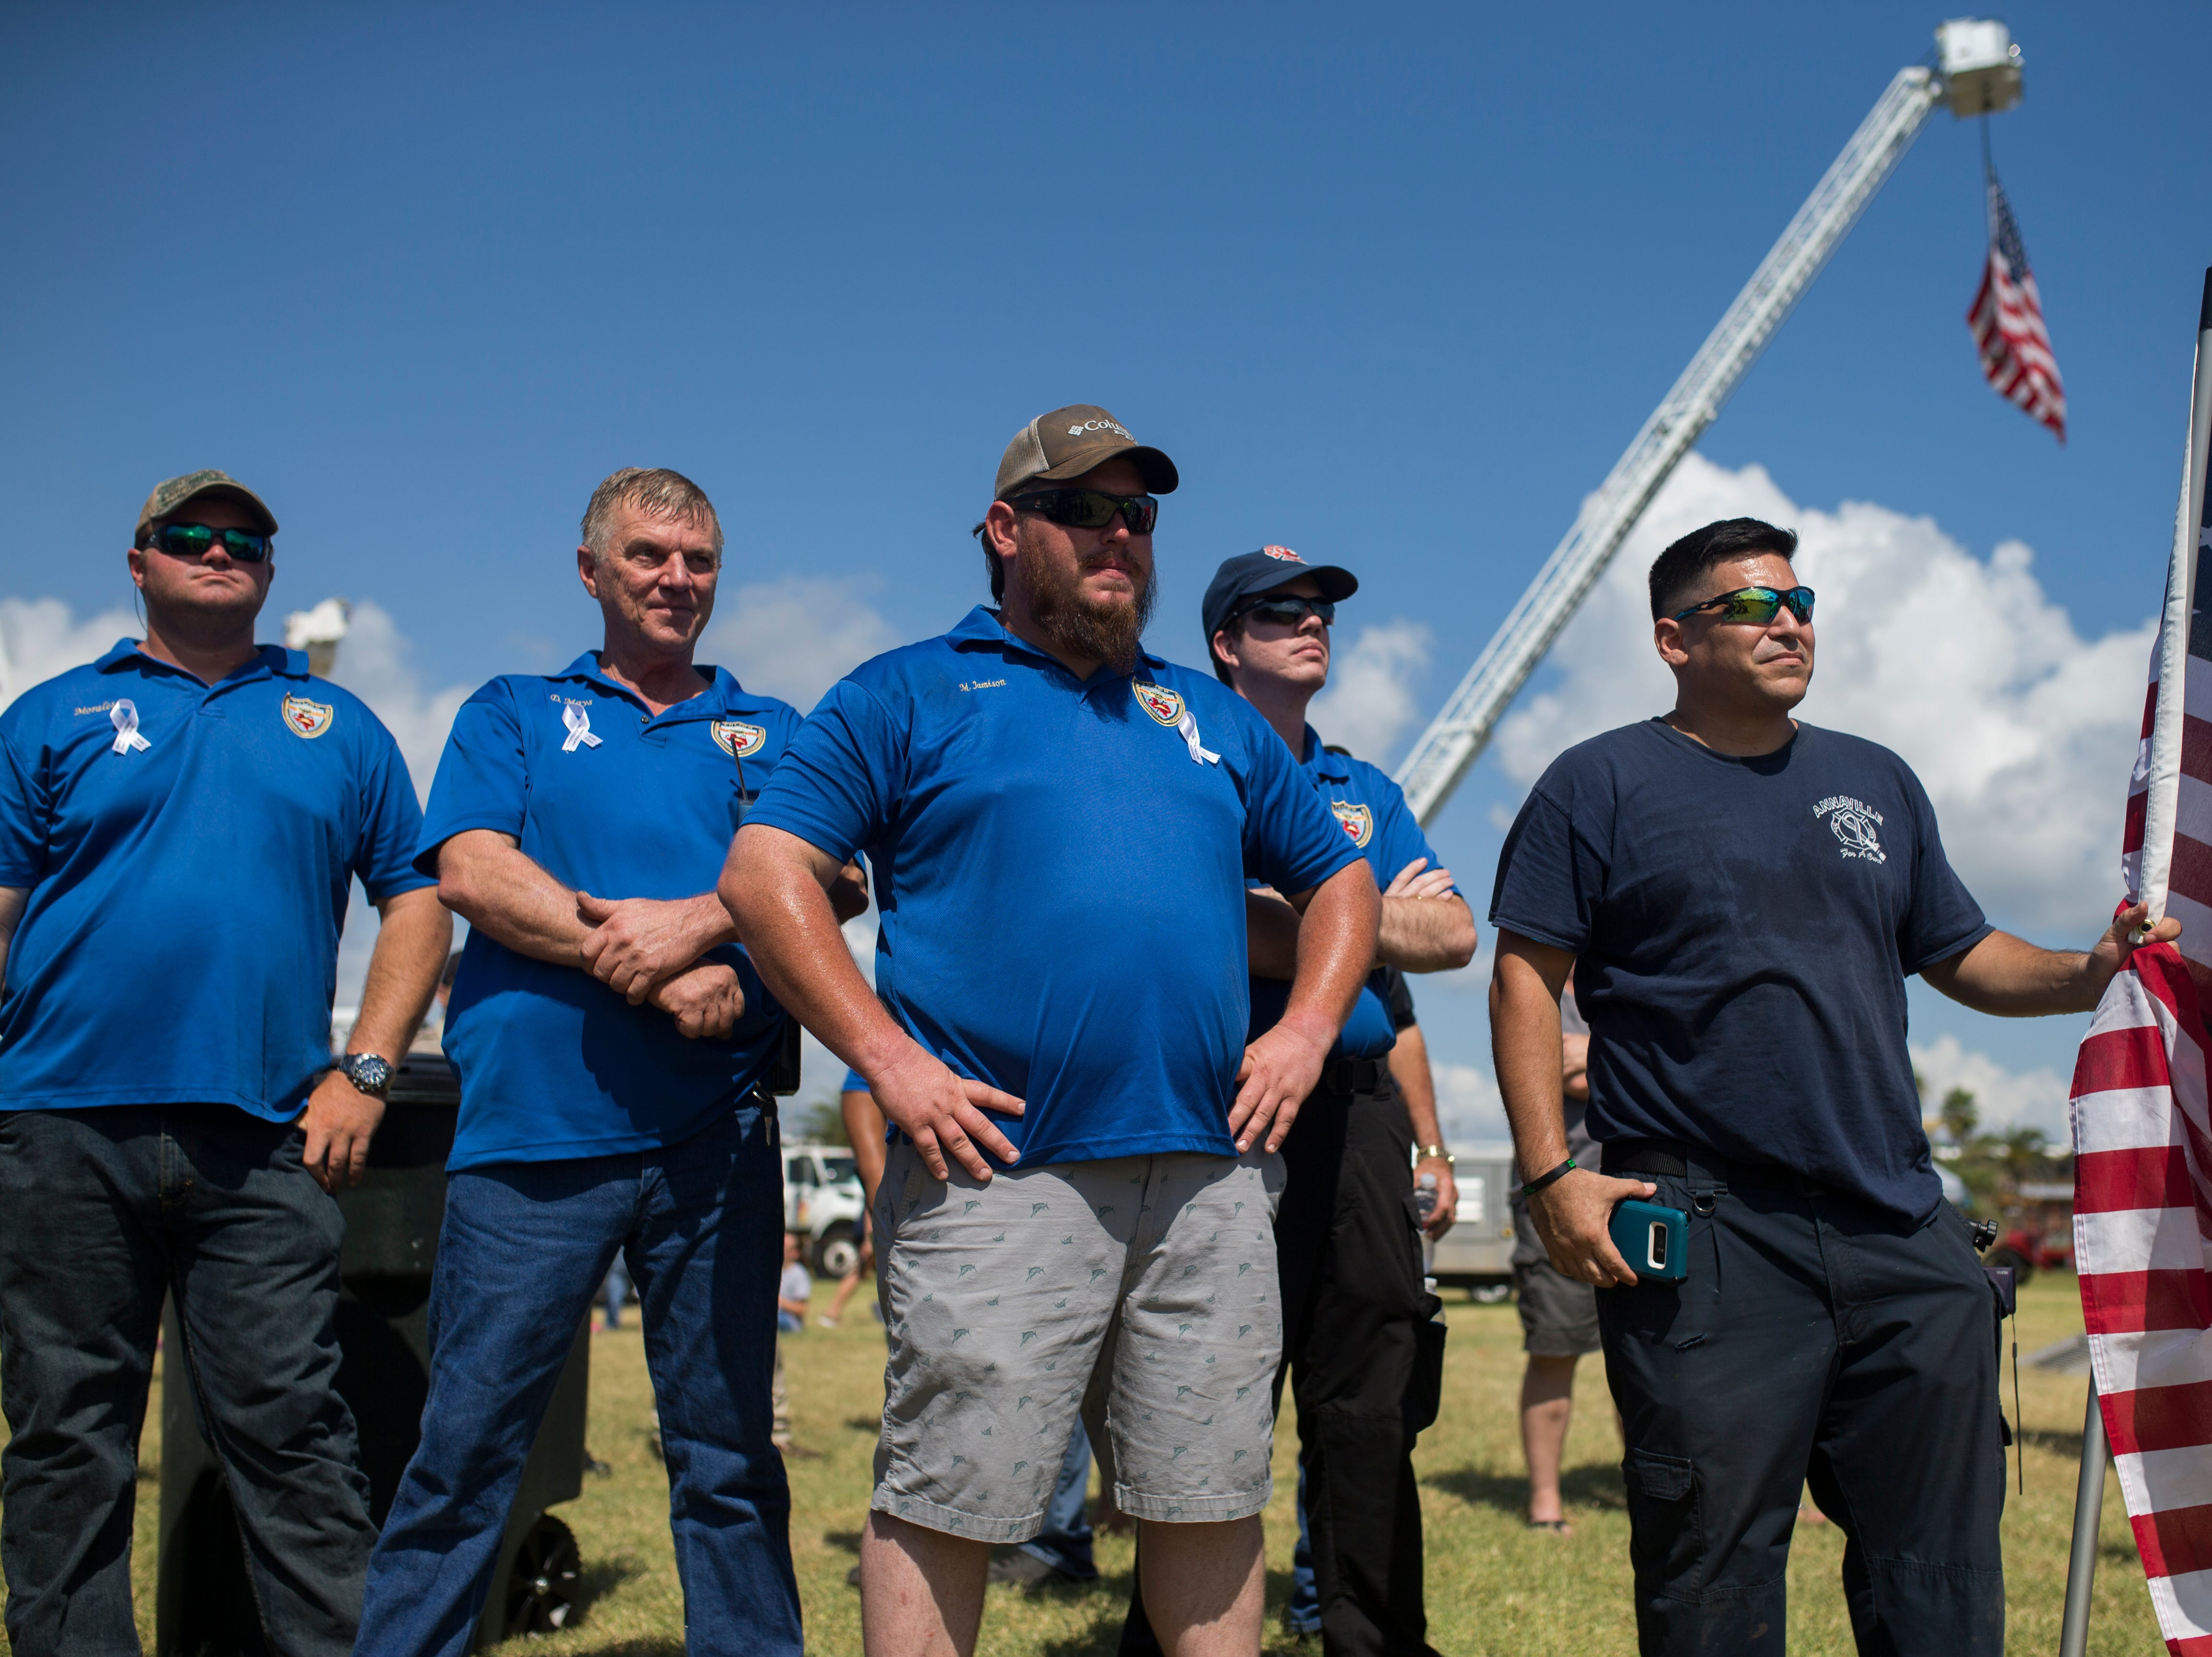 The Aransas County first responders listen to speakers during a remembrance ceremony and to honor first responders for the anniversary of Hurricane Harvey on Saturday, Aug. 25, 2018 in Rockport.